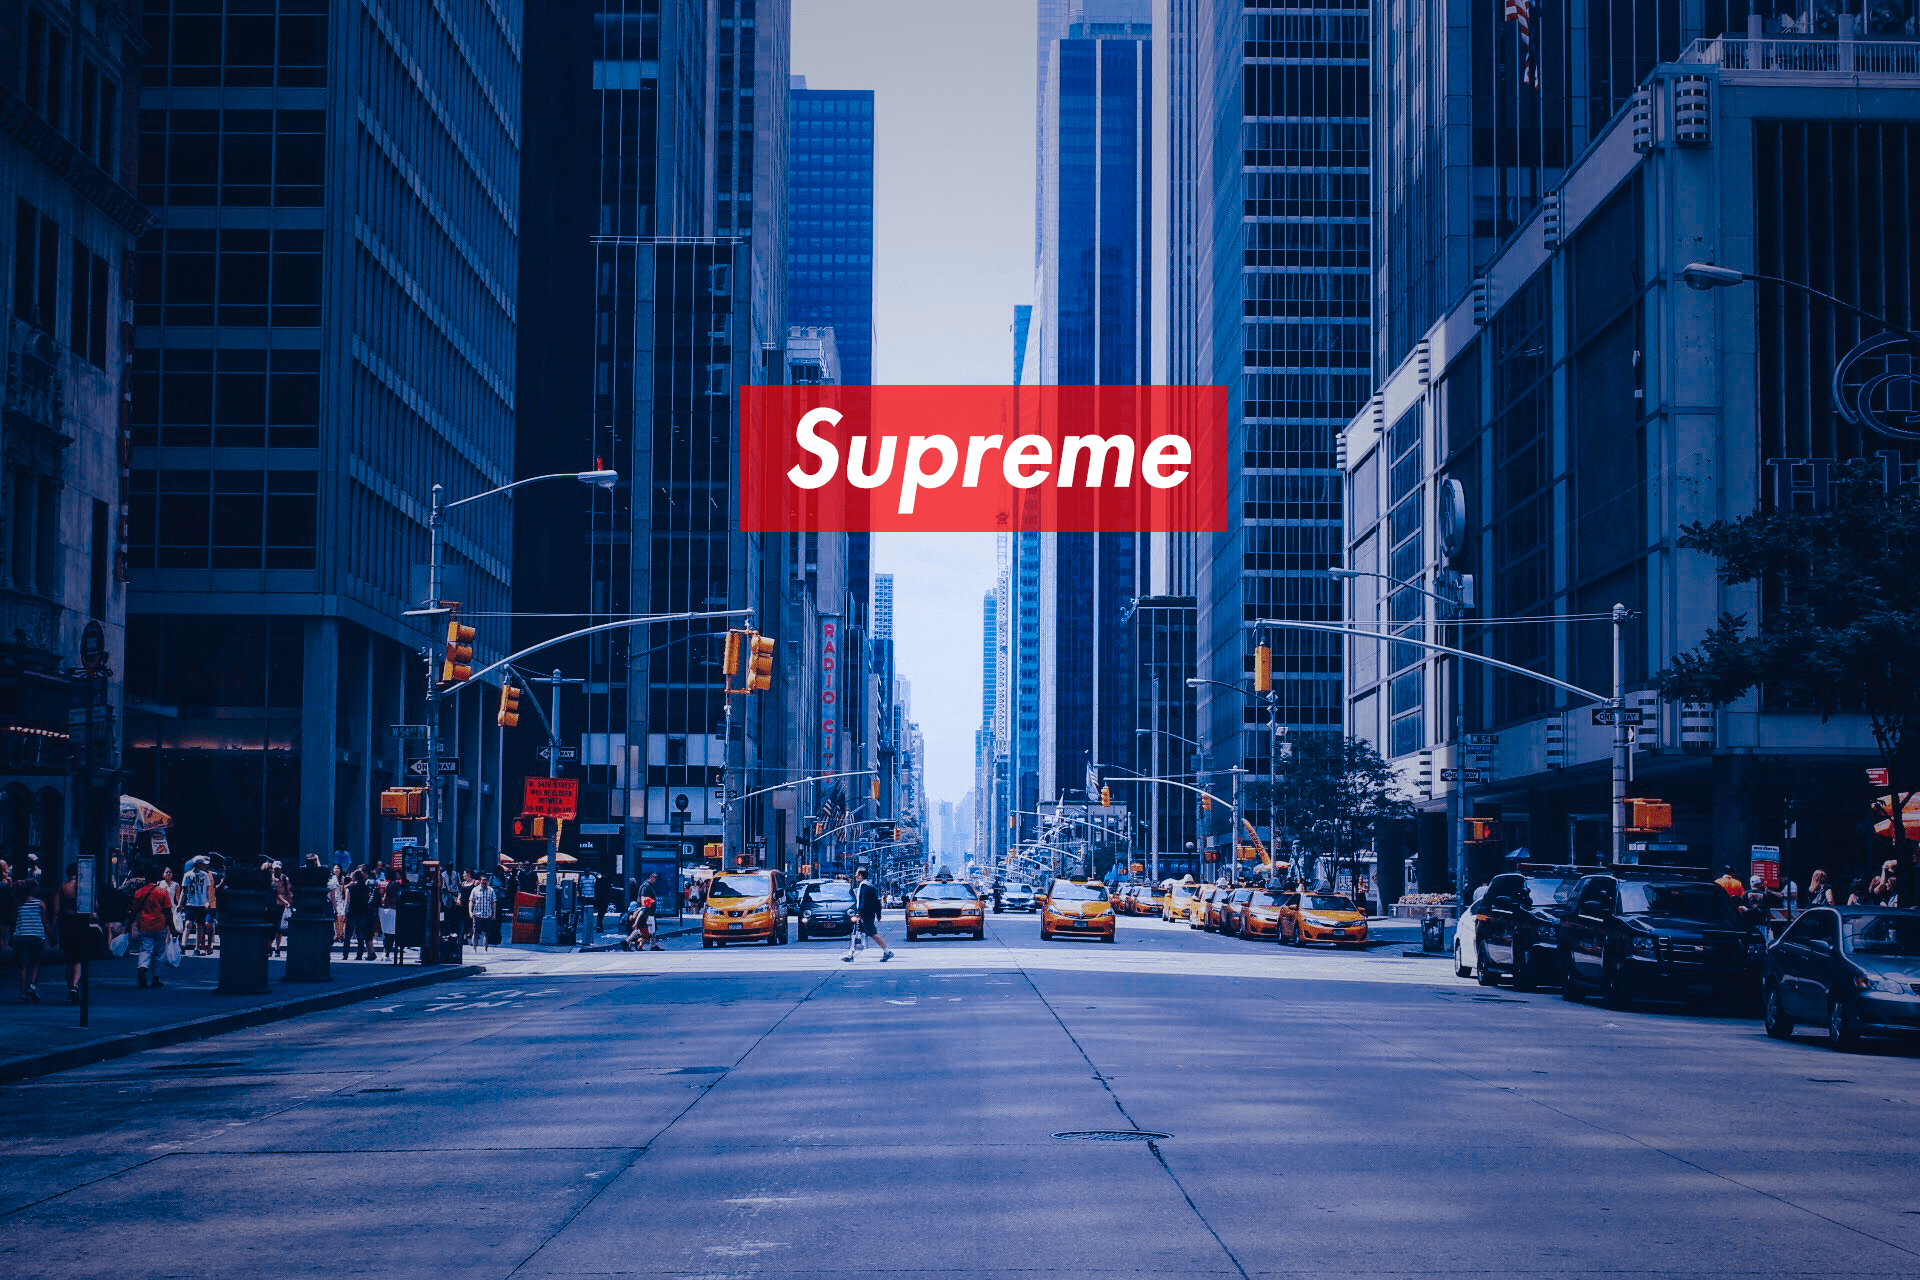 70+ Supreme Wallpapers in 4K AllHDWallpapers Supreme